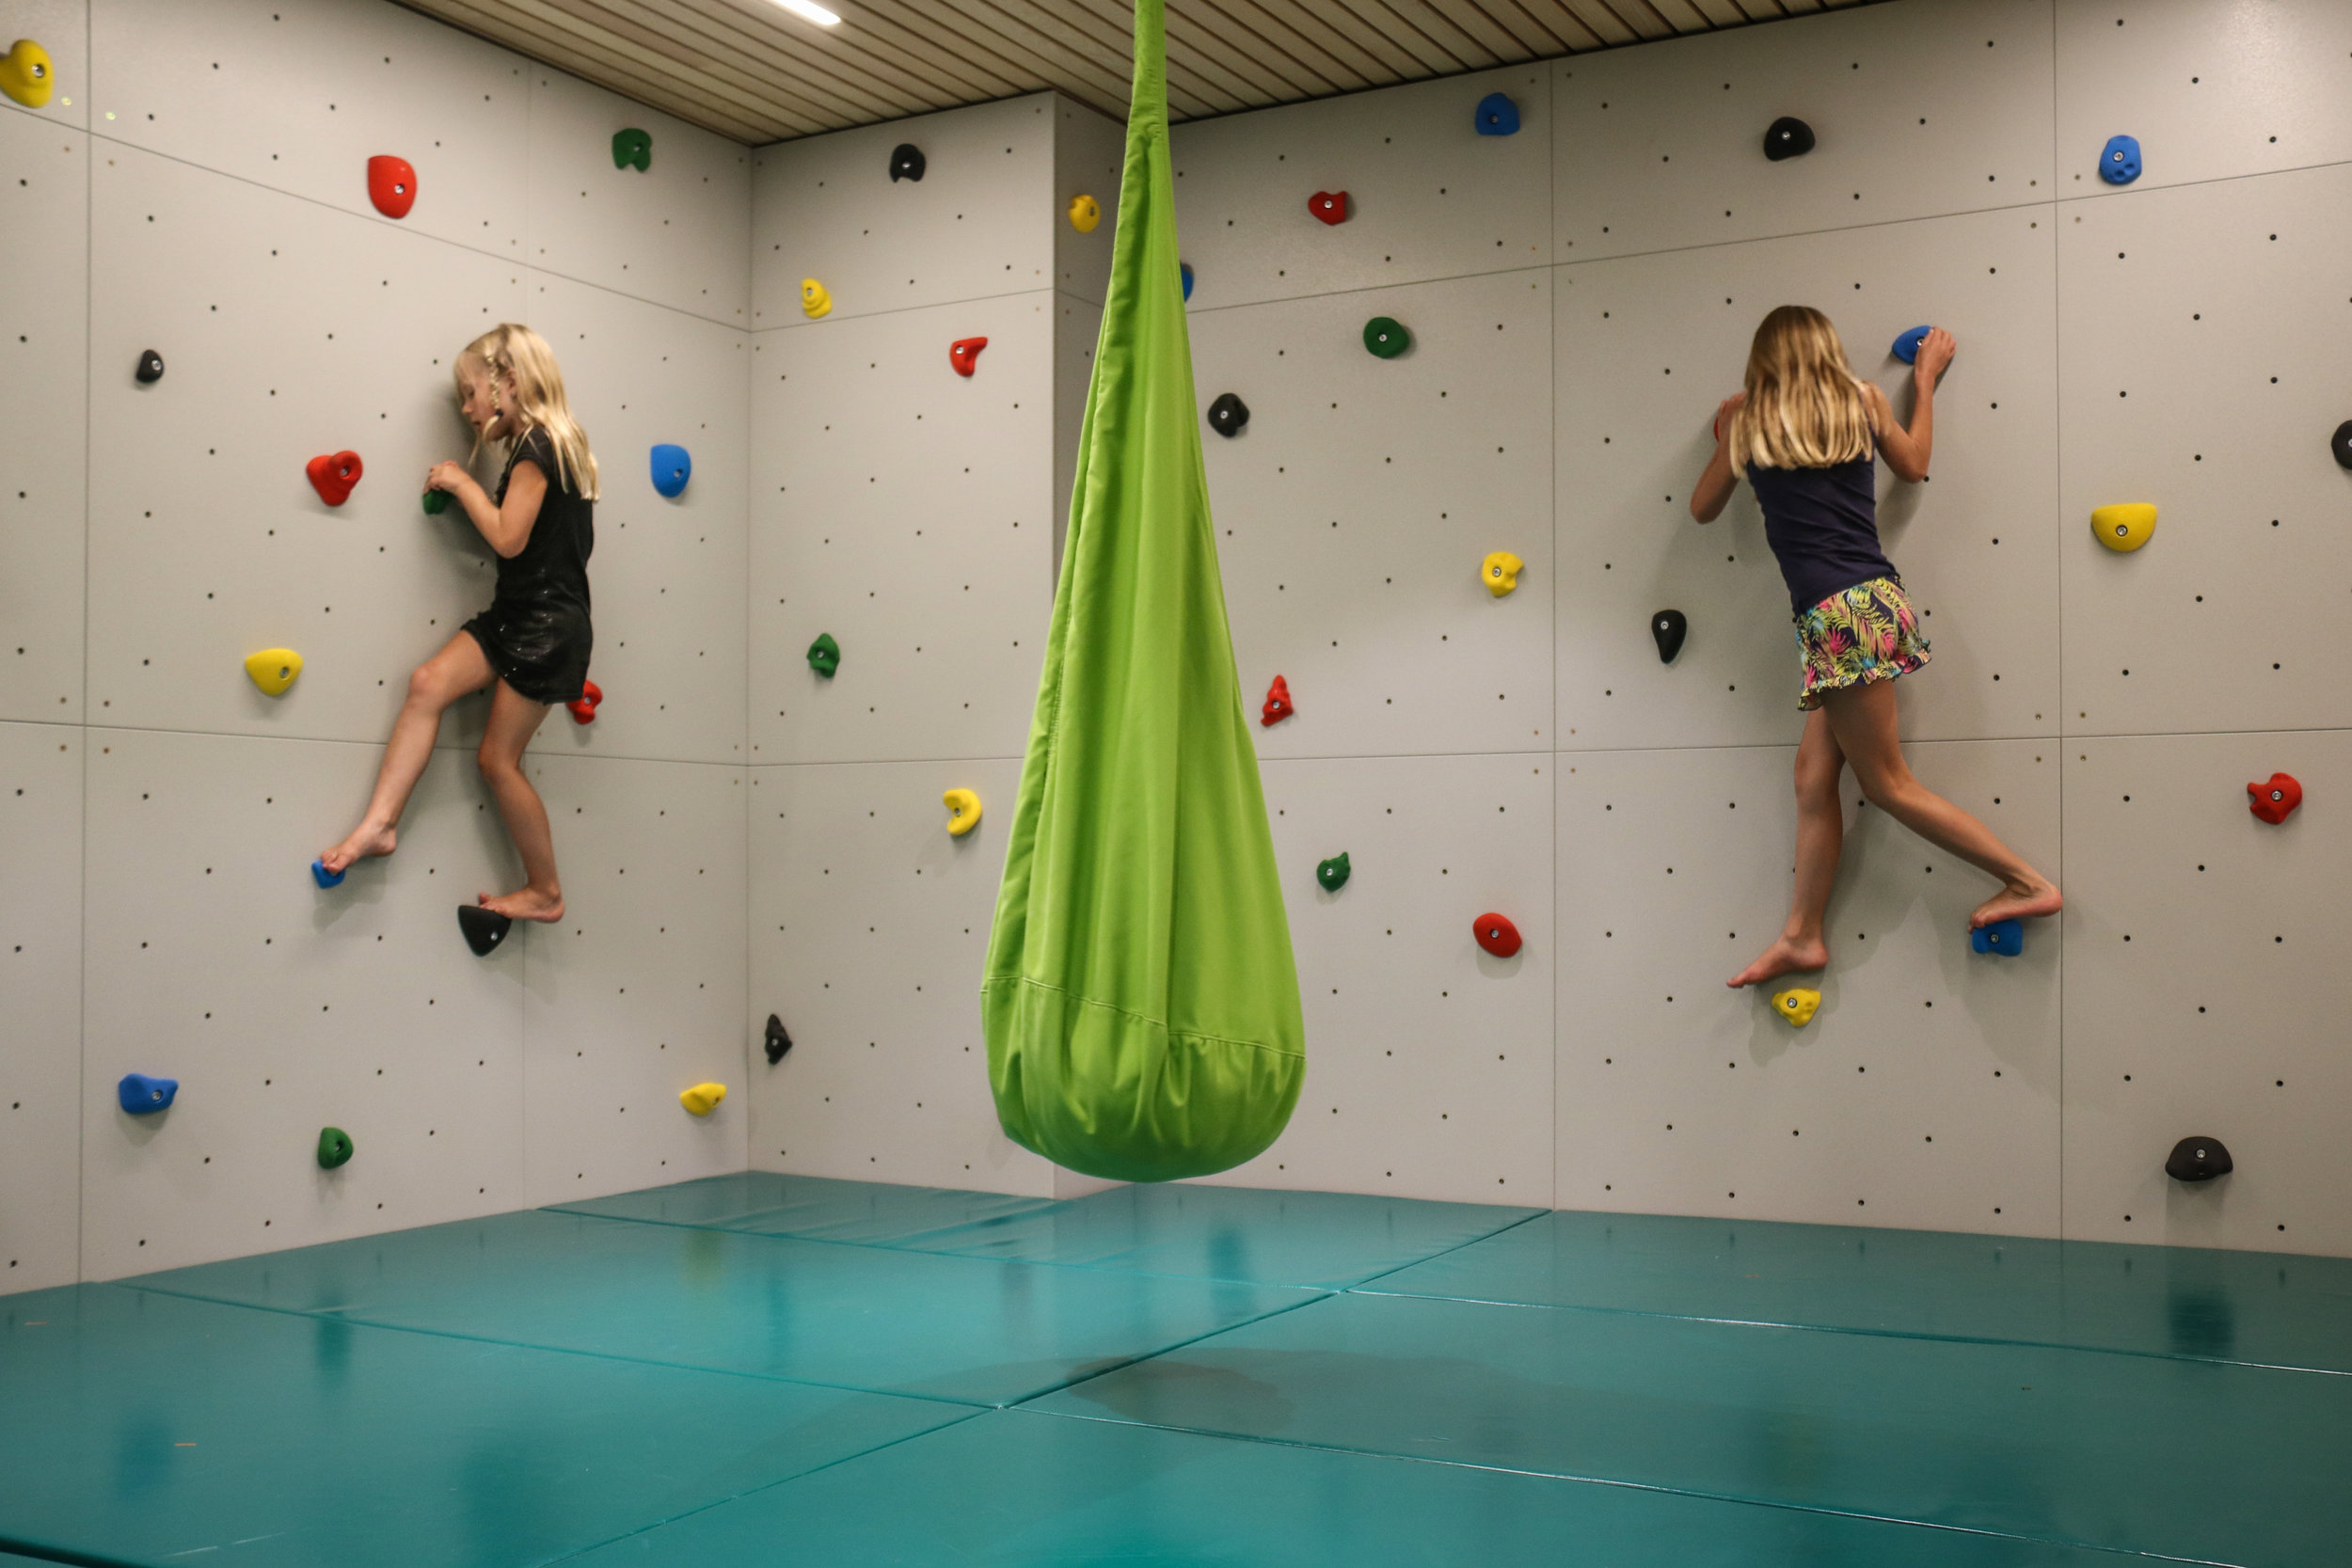 Even a climbing opportunity indoor